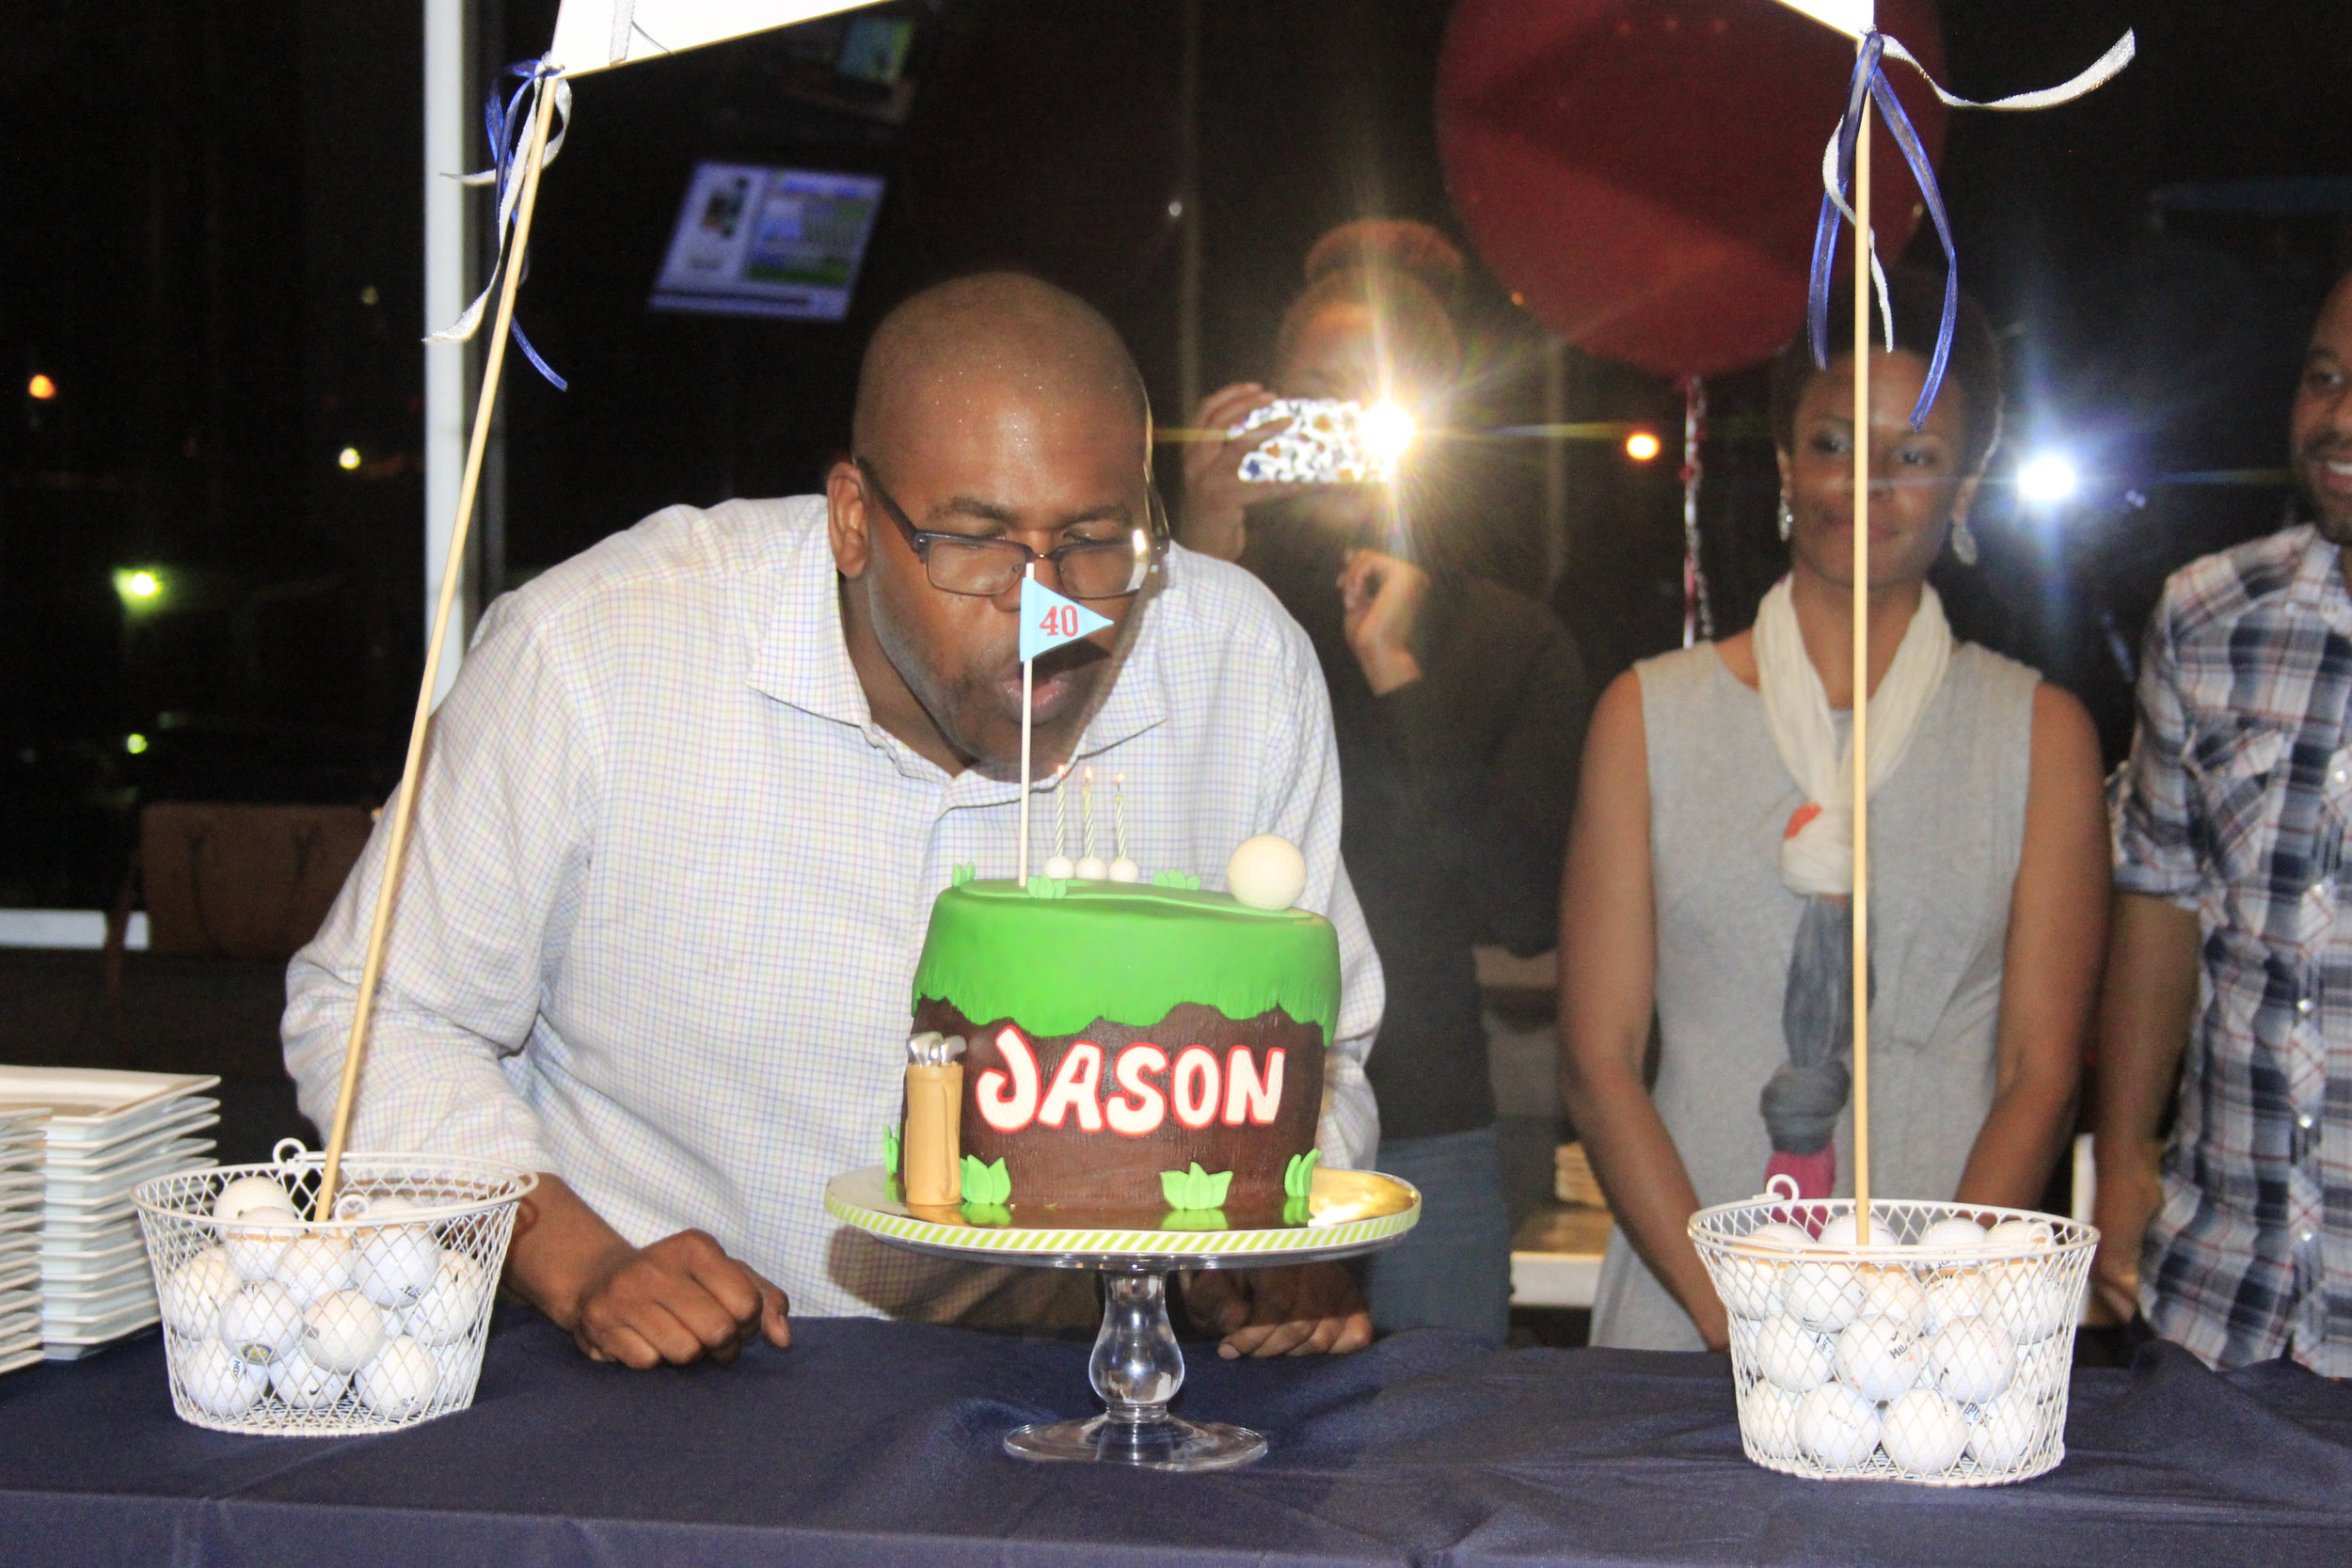 Jason Johnson's 40th Birthday - view gallery